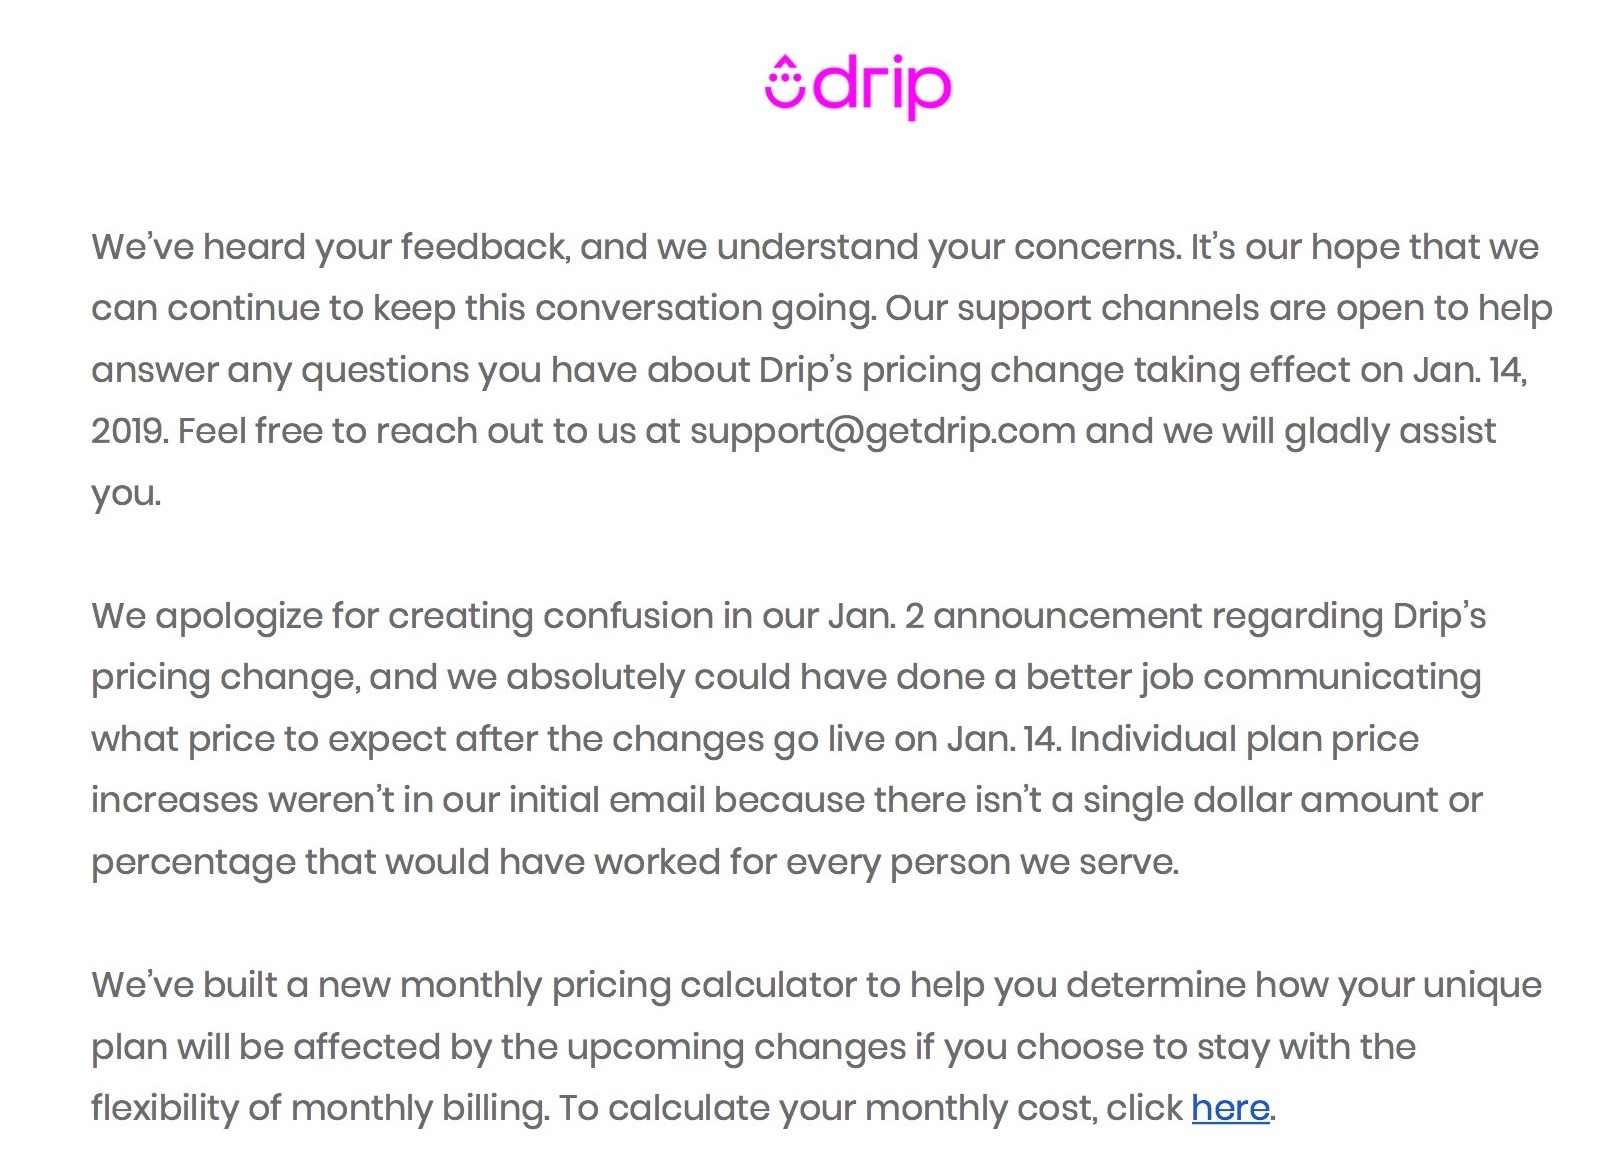 drip pricing change sorry not sorry